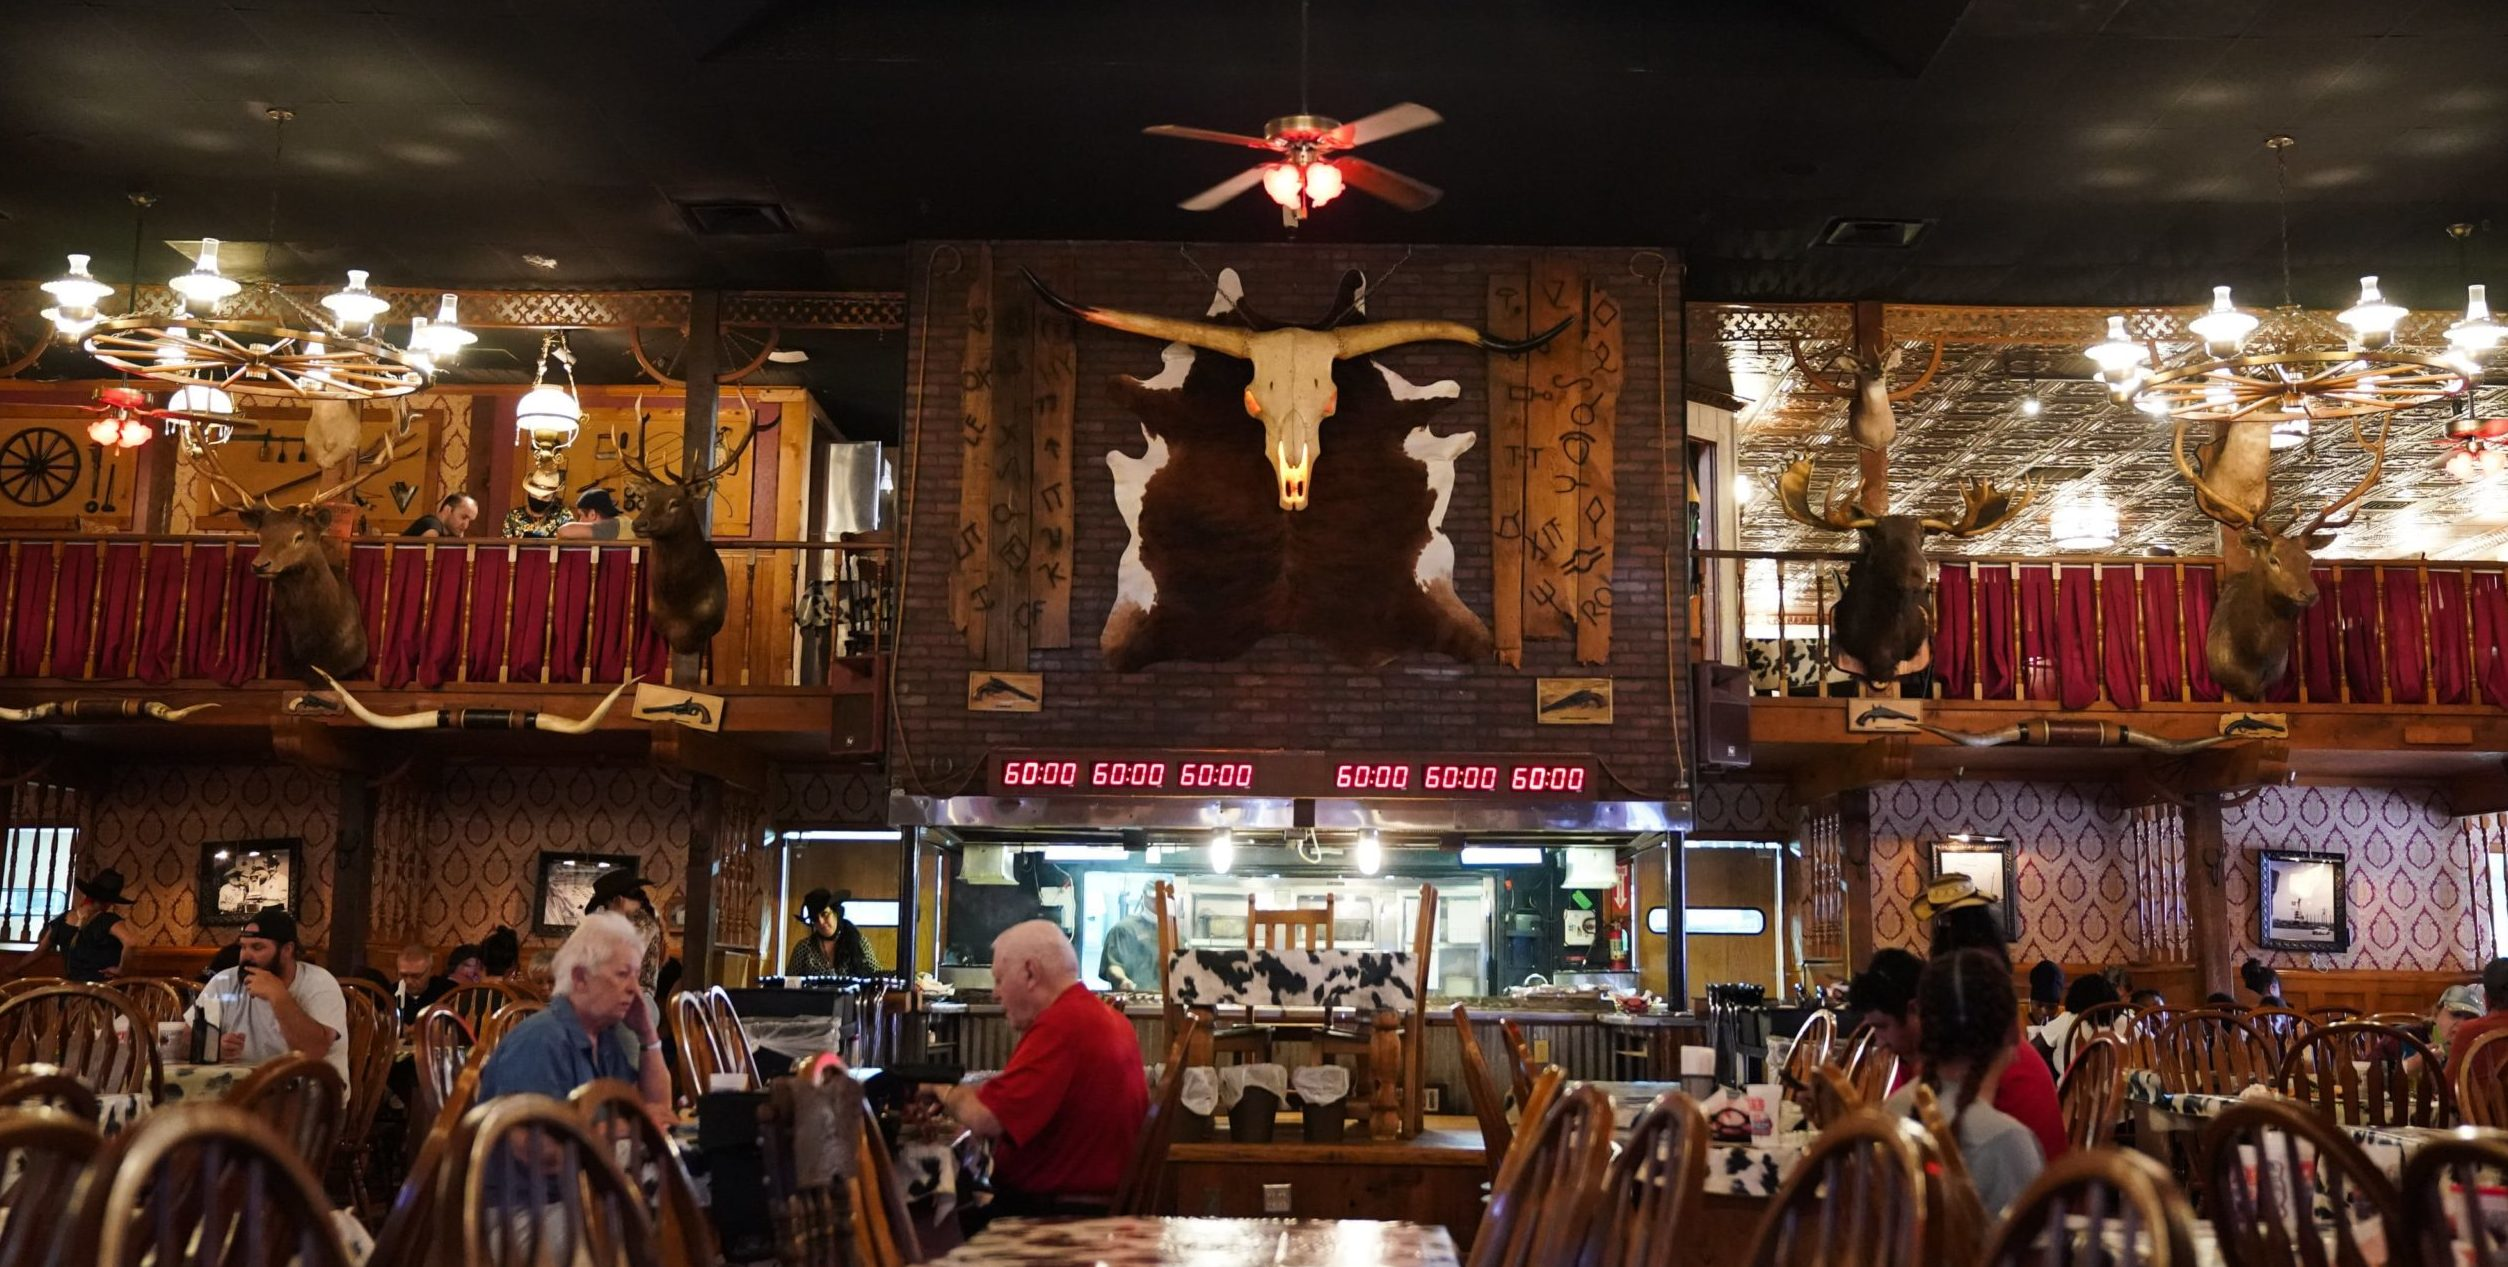 The Big Texan is one of many Man v. Food restaurants you can still visit